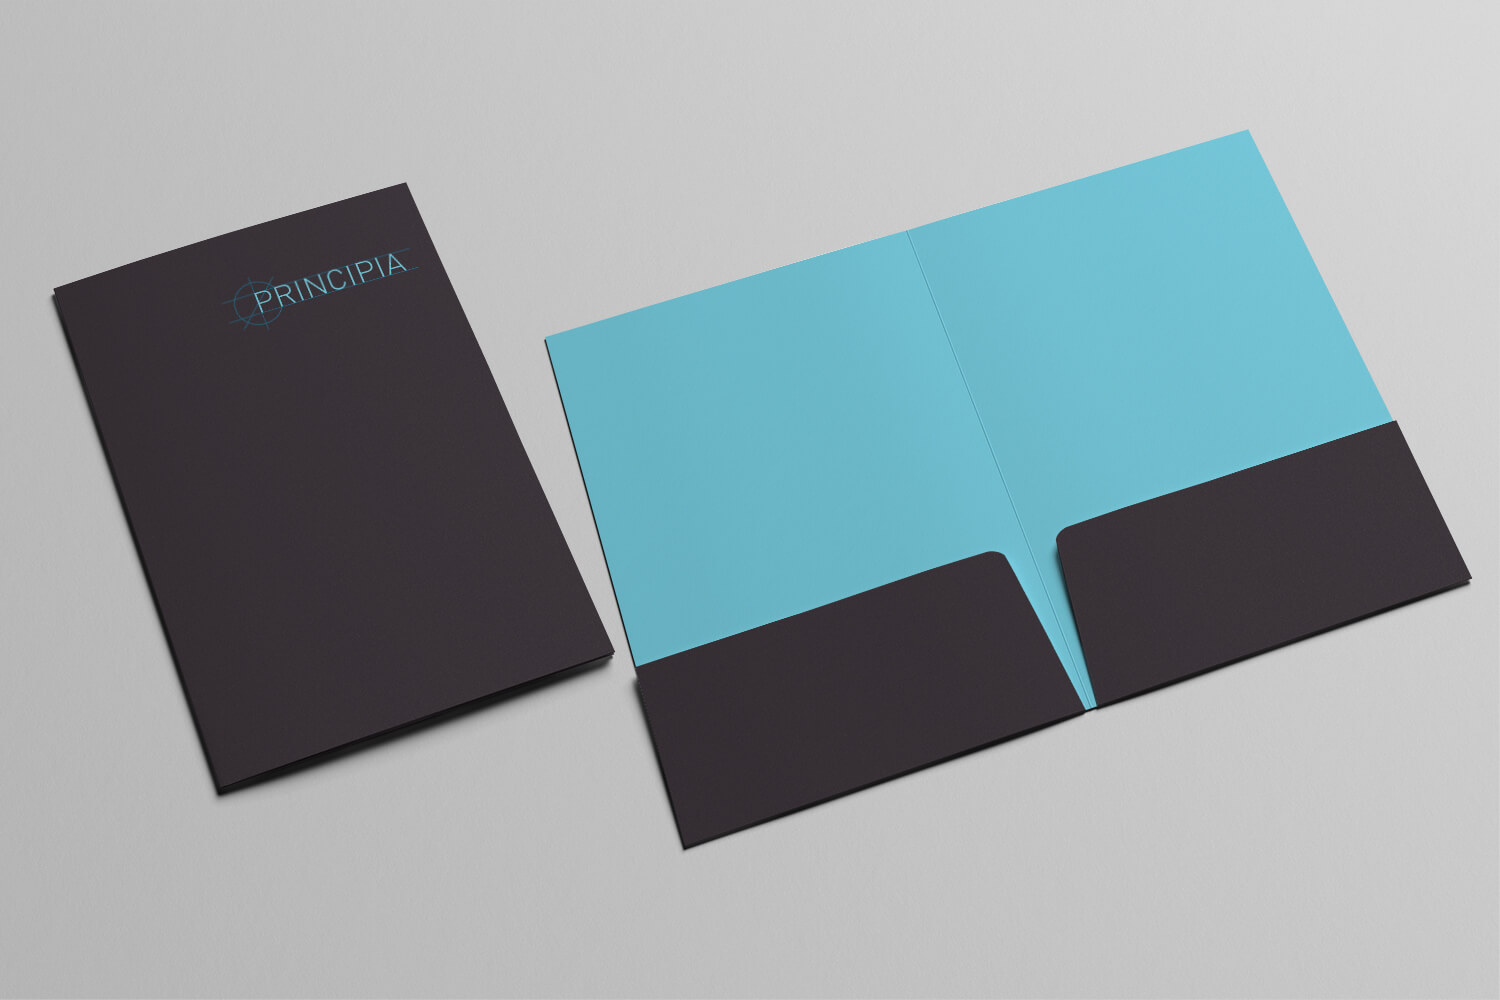 A photo of the A4 folder designed for the Principia Brand Identity